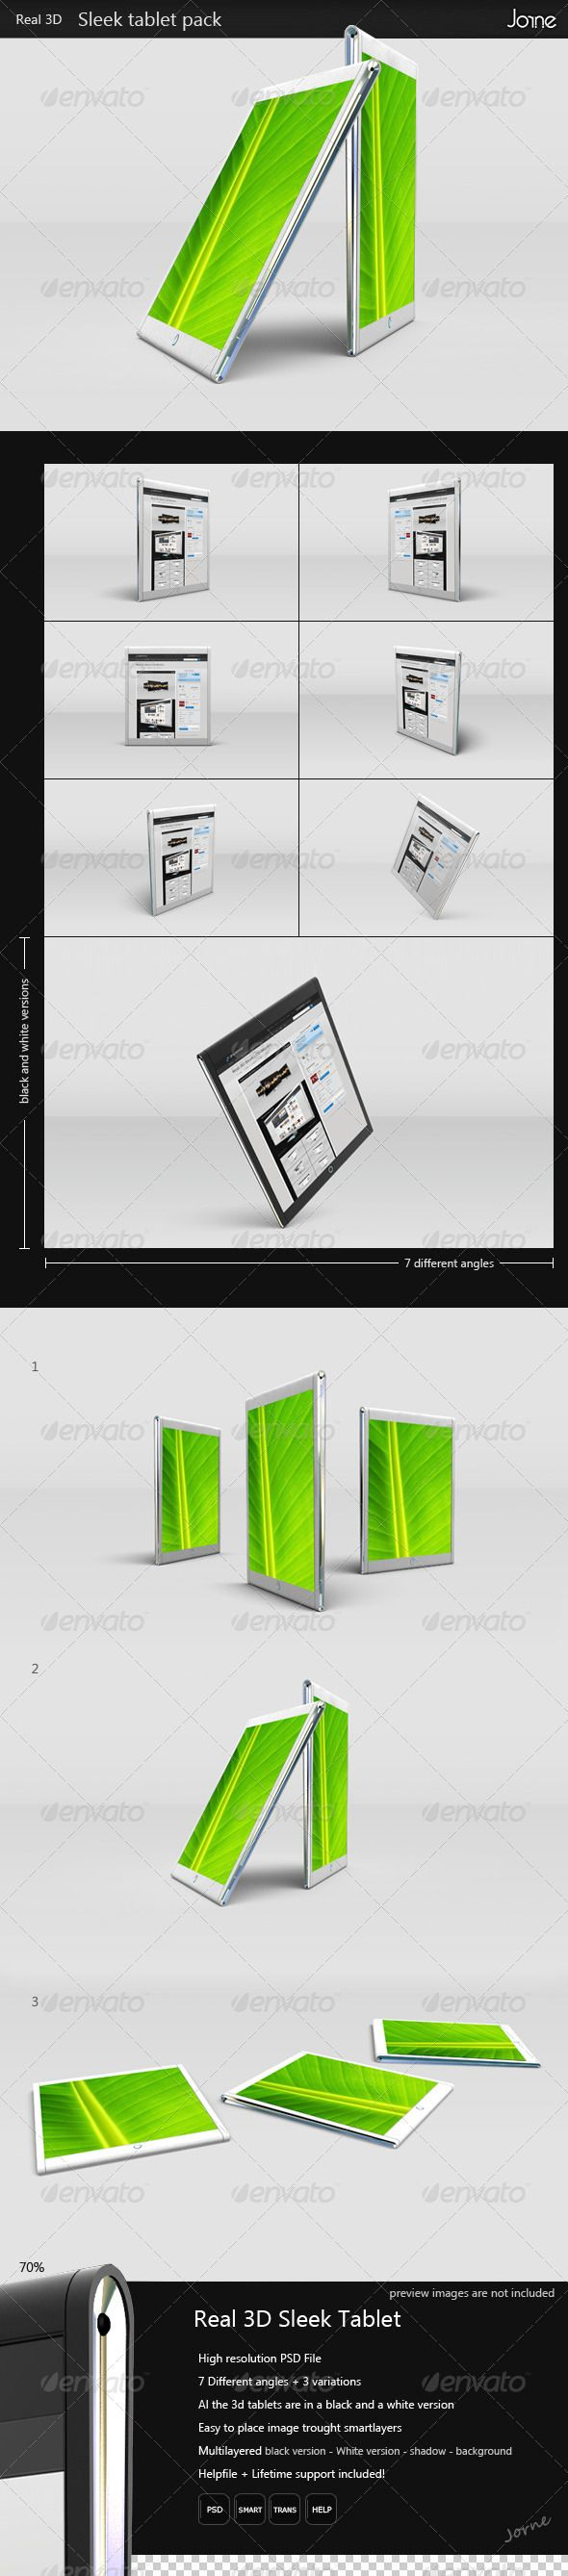 Real 3D Tablet Mockup — Photoshop PSD #portfolio #display • Available here → https://graphicriver.net/item/real-3d-tablet-mockup/1401005?ref=pxcr